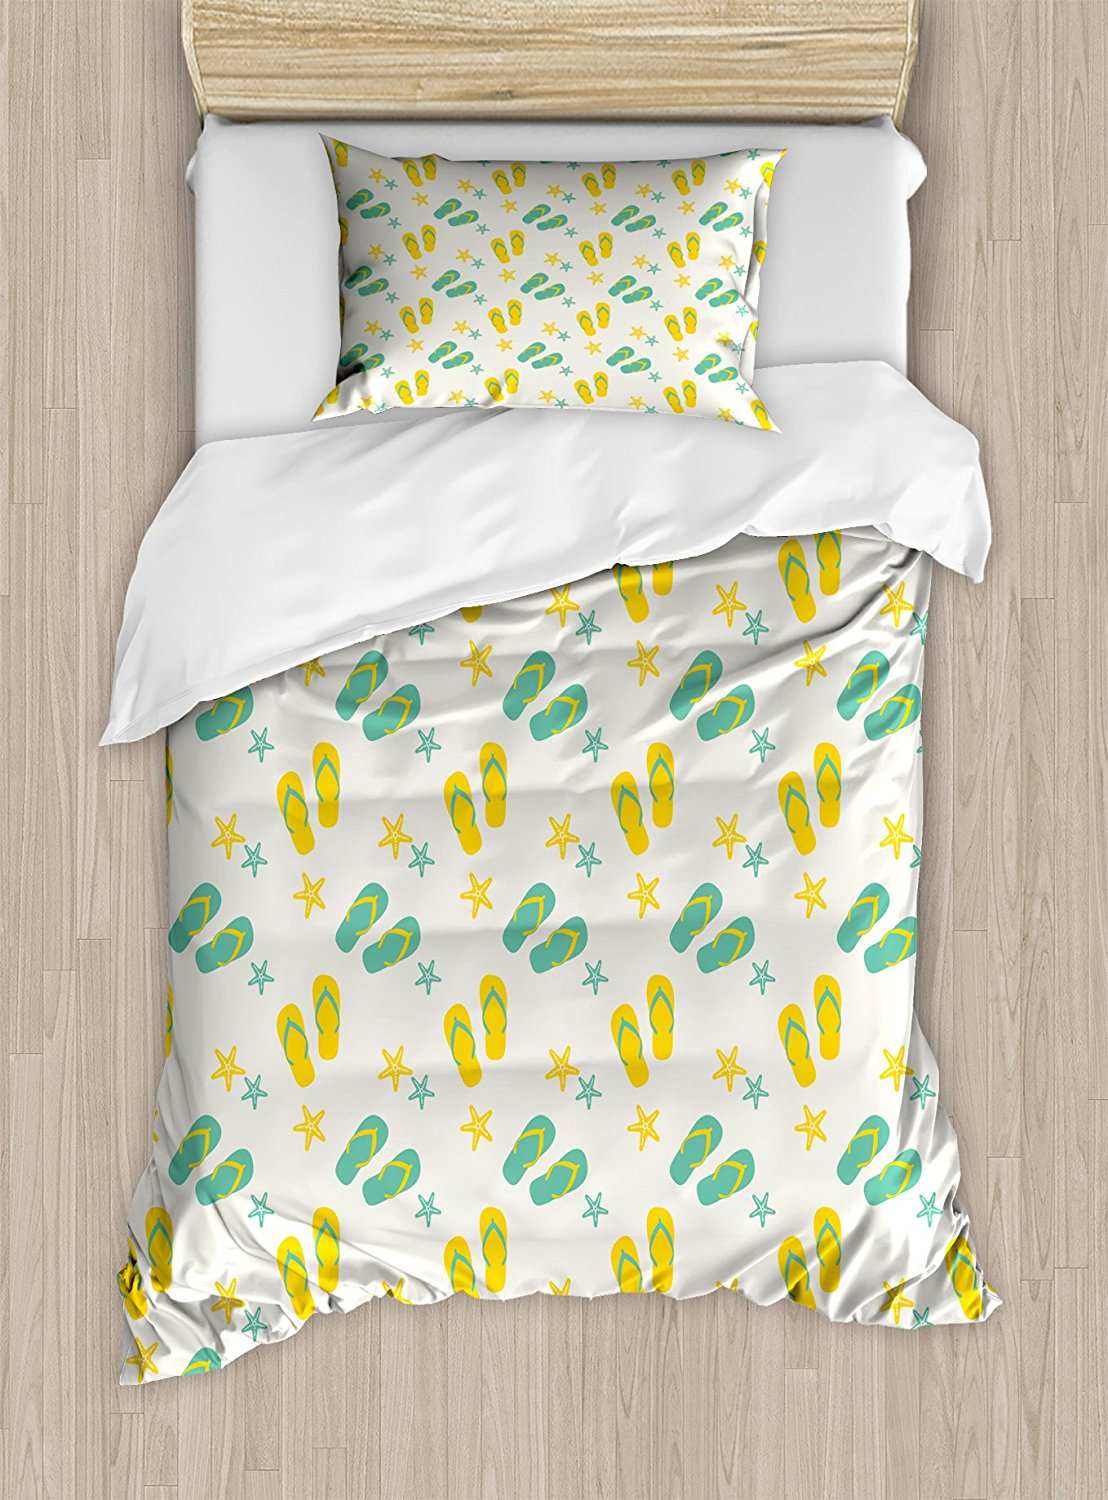 Geometric Duvet Cover Set, Flip Flops and Starfishes Beach Elements Exotic Poolside Theme Pattern, 4 Piece Bedding Set